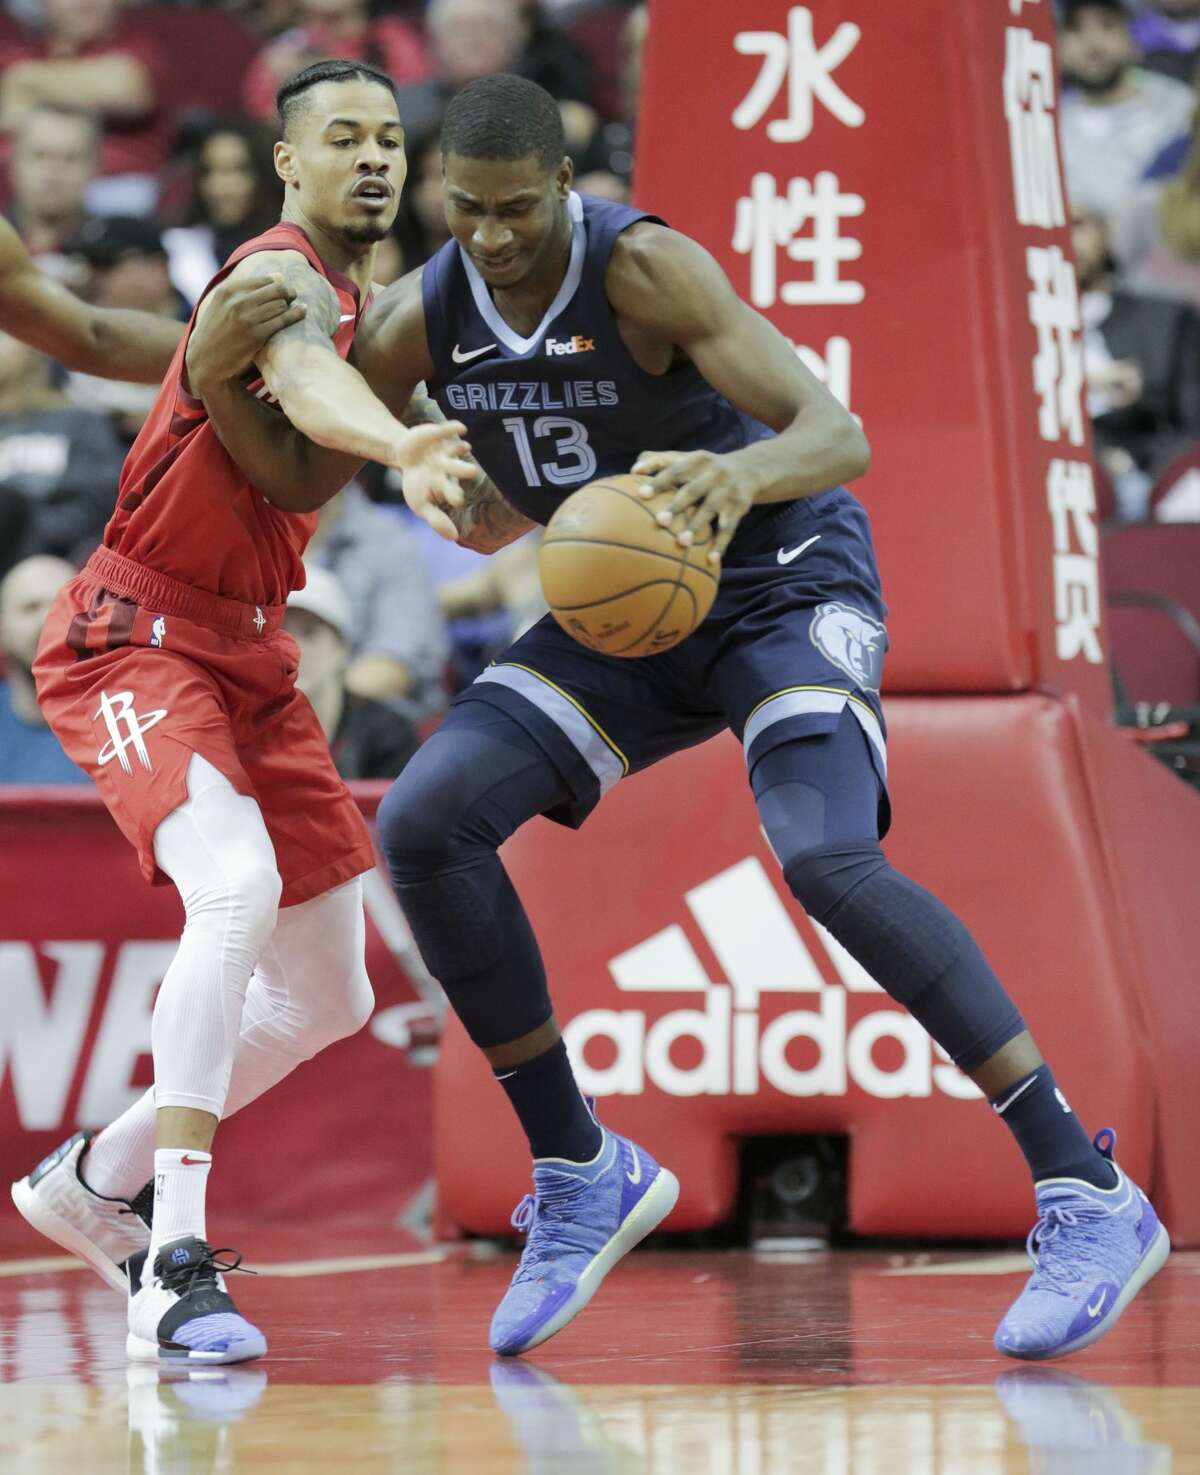 Houston Rockets guard Gerald Green (14) gets caught up with Memphis Grizzlies forward Jaren Jackson Jr. (13) in the first half of NBA game action the Toyota Center on Monday, Dec. 31, 2018 in Houston.